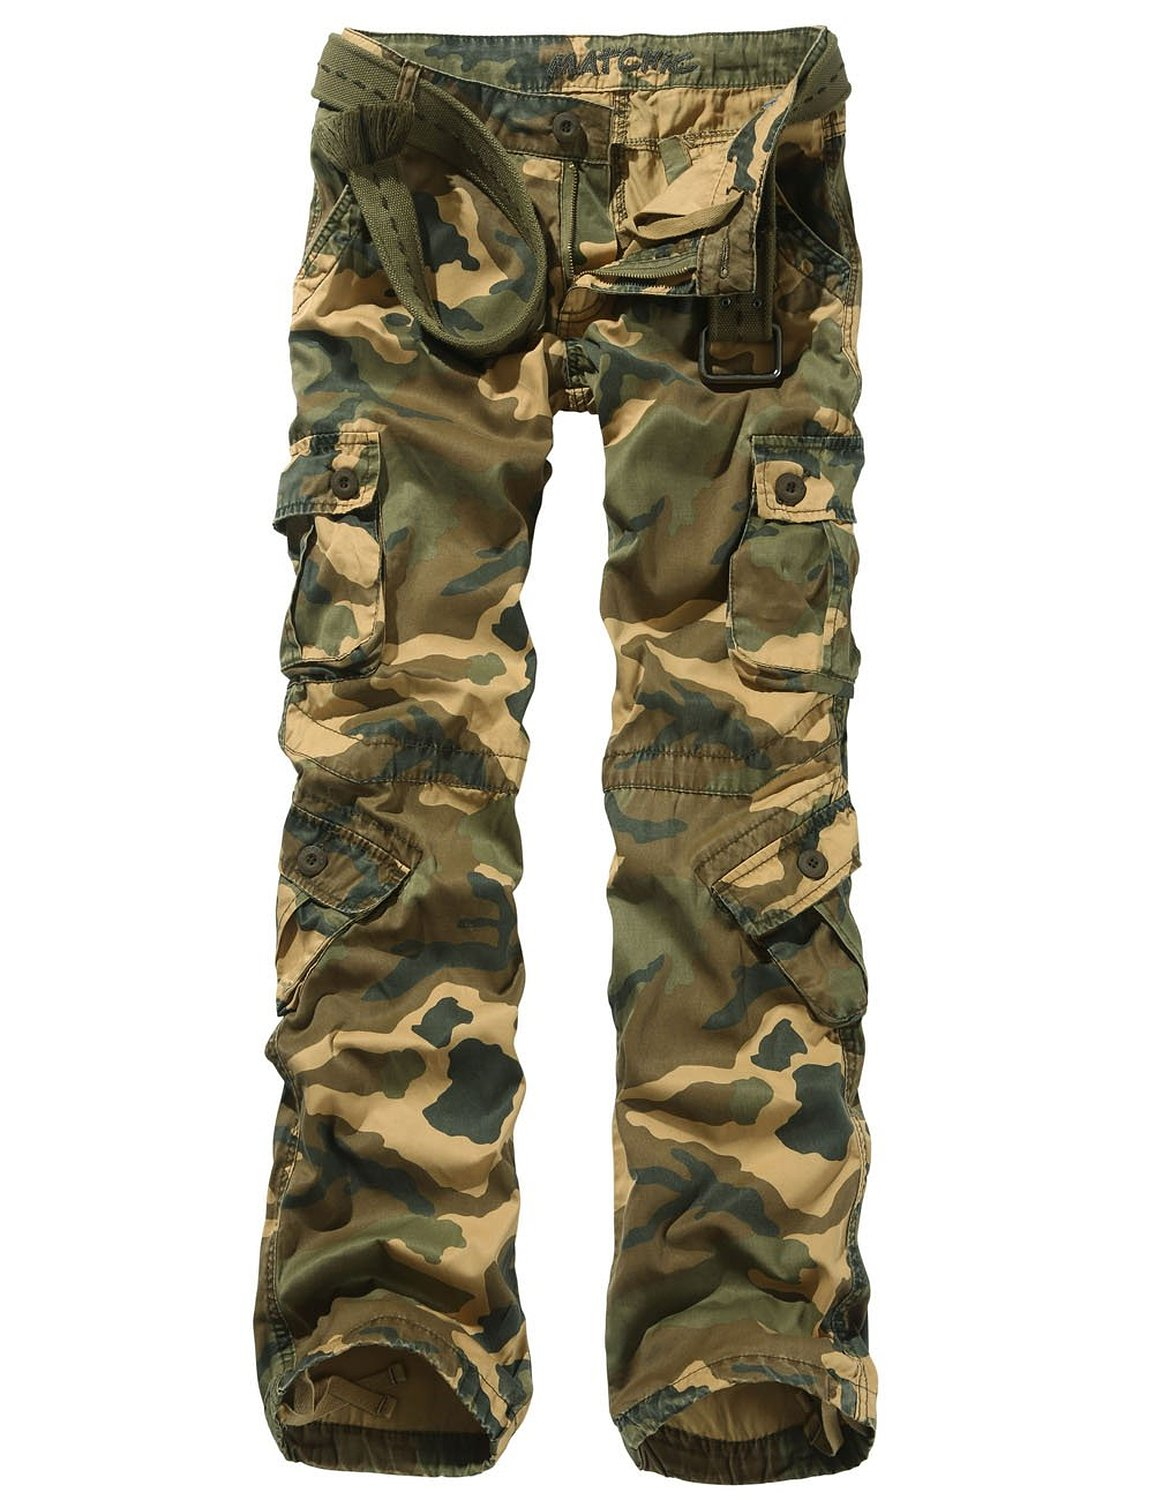 2a9f5345eeecf Match Women's Camo Cargo s Sports Outdoors Military #2036M at Amazon  Women's Clothing store: Pants